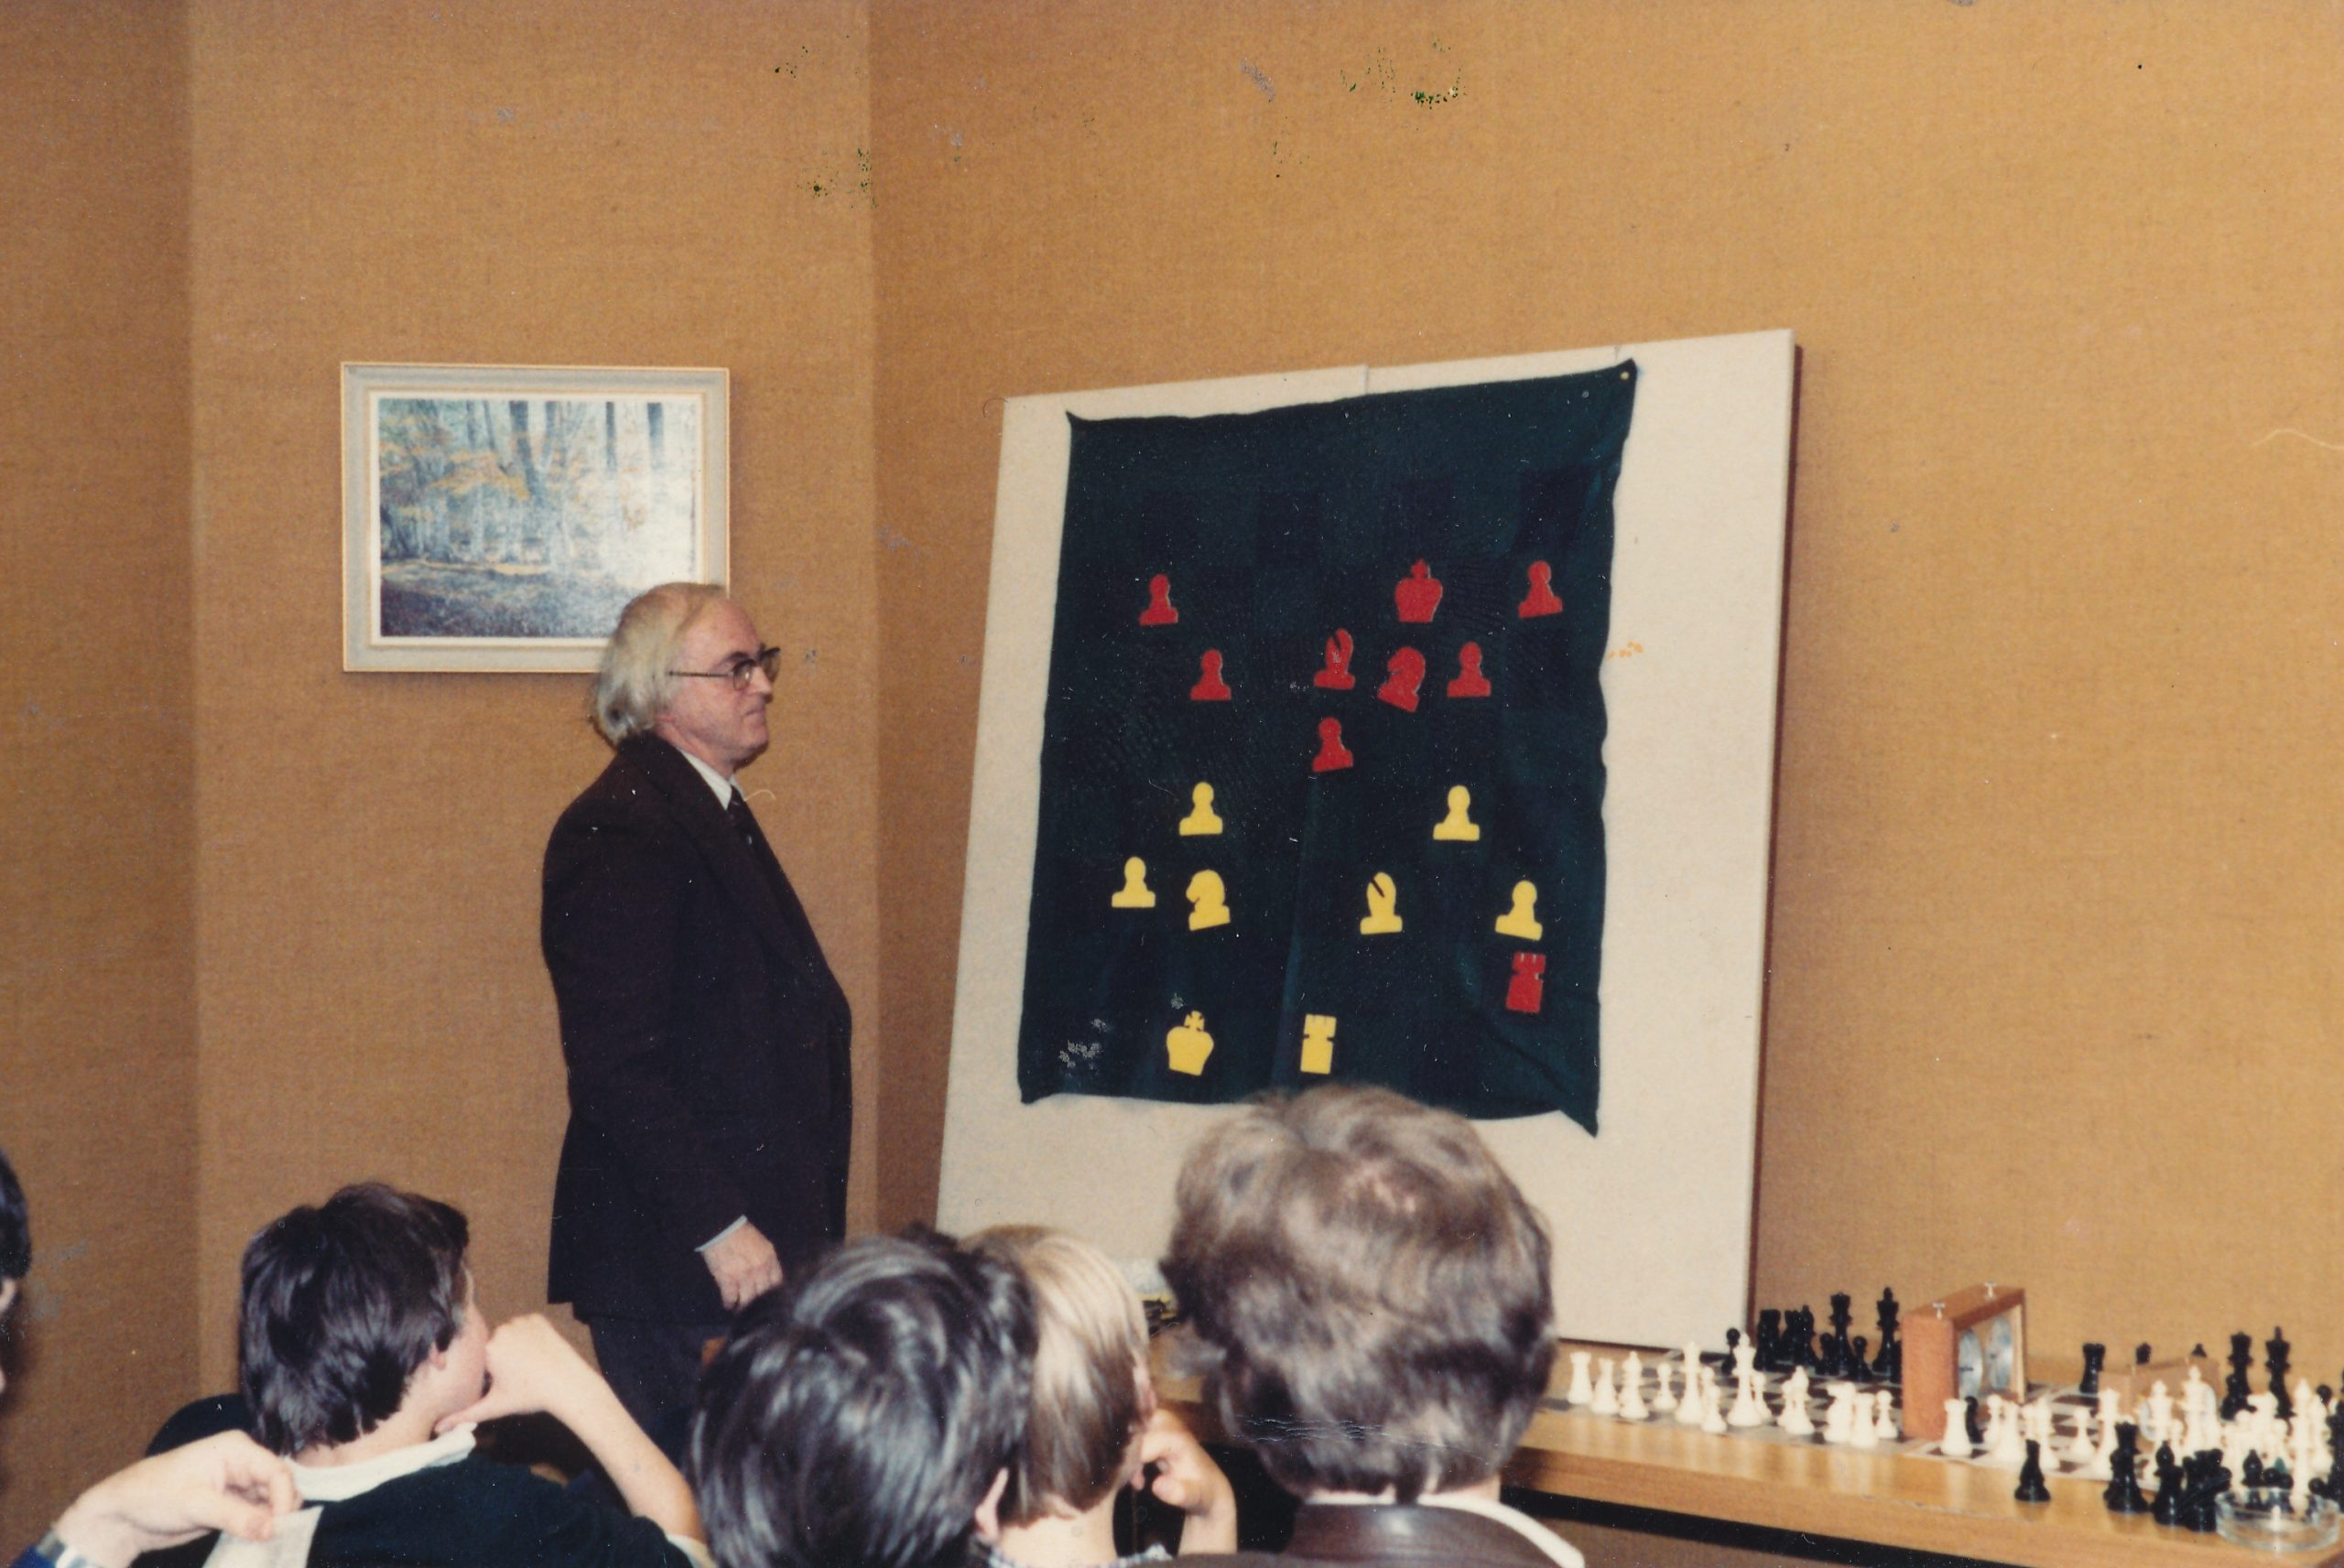 Bob at the demo board at London Central YMCA chess club.